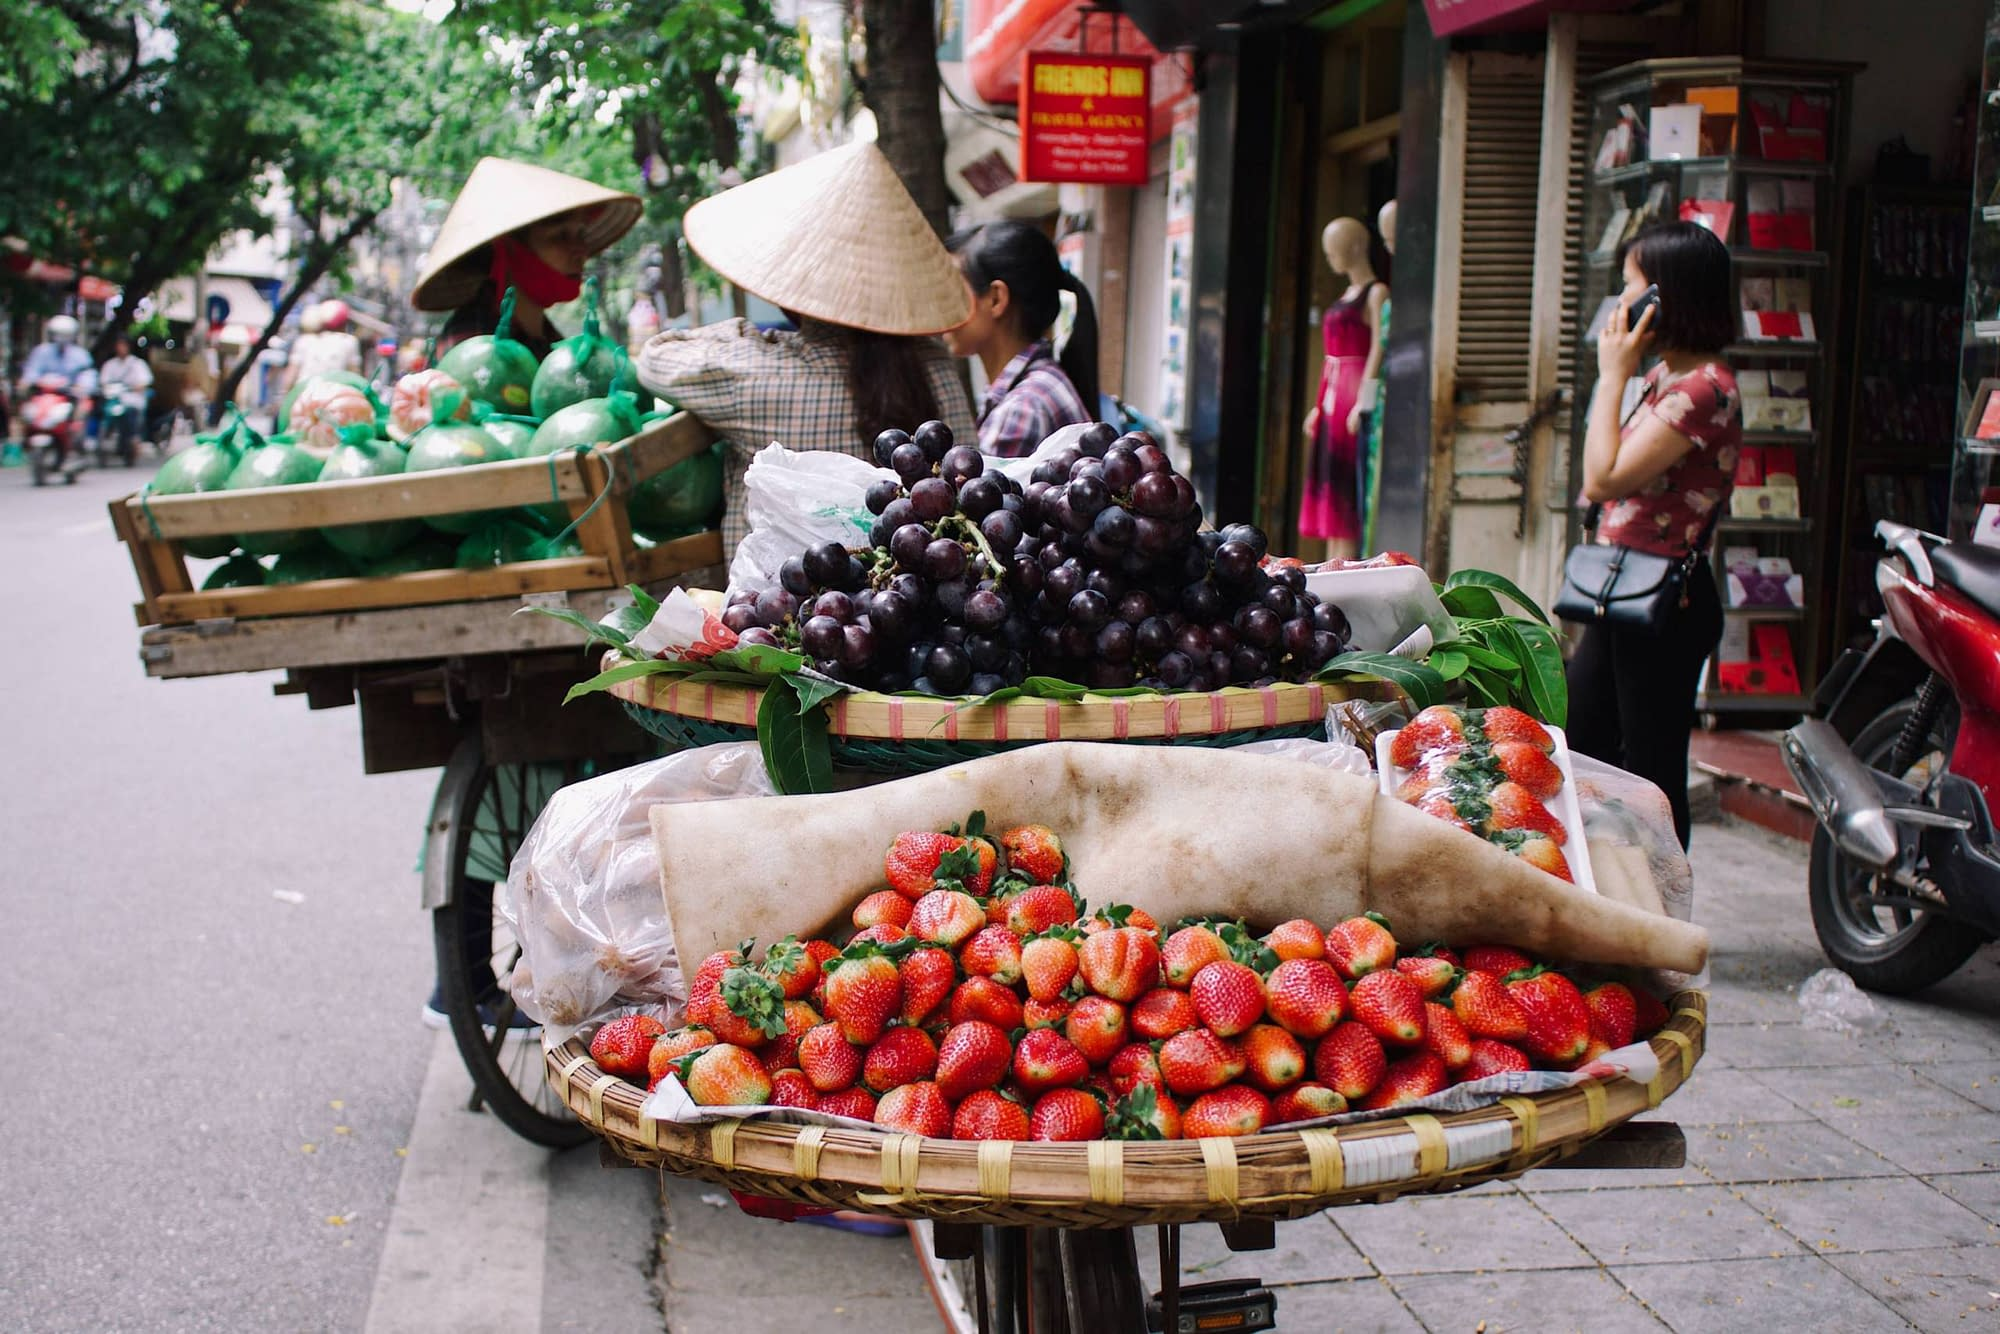 A fresh market in Hanoi with fruits